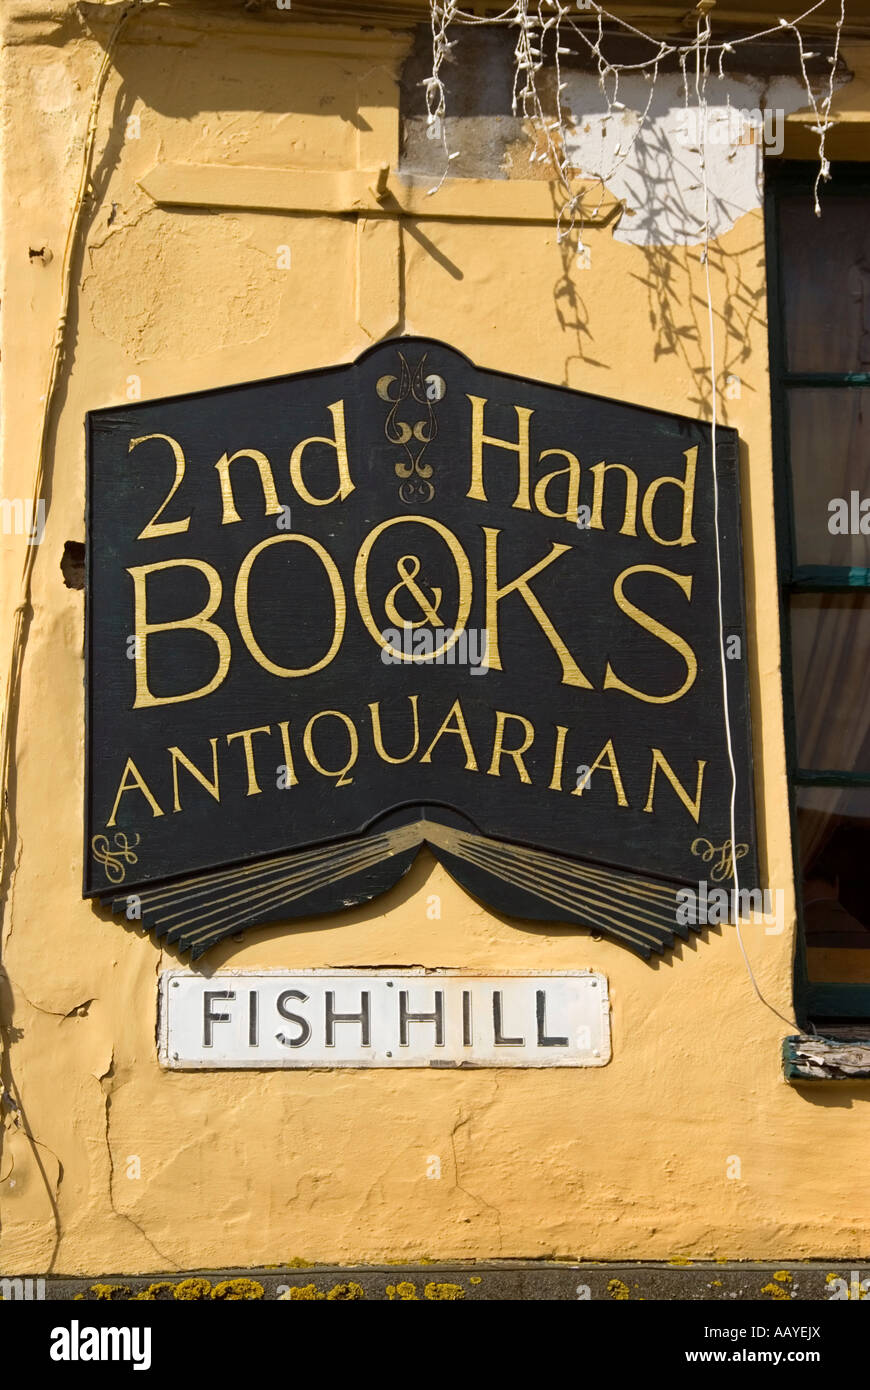 Book shop sign in Holt - Stock Image